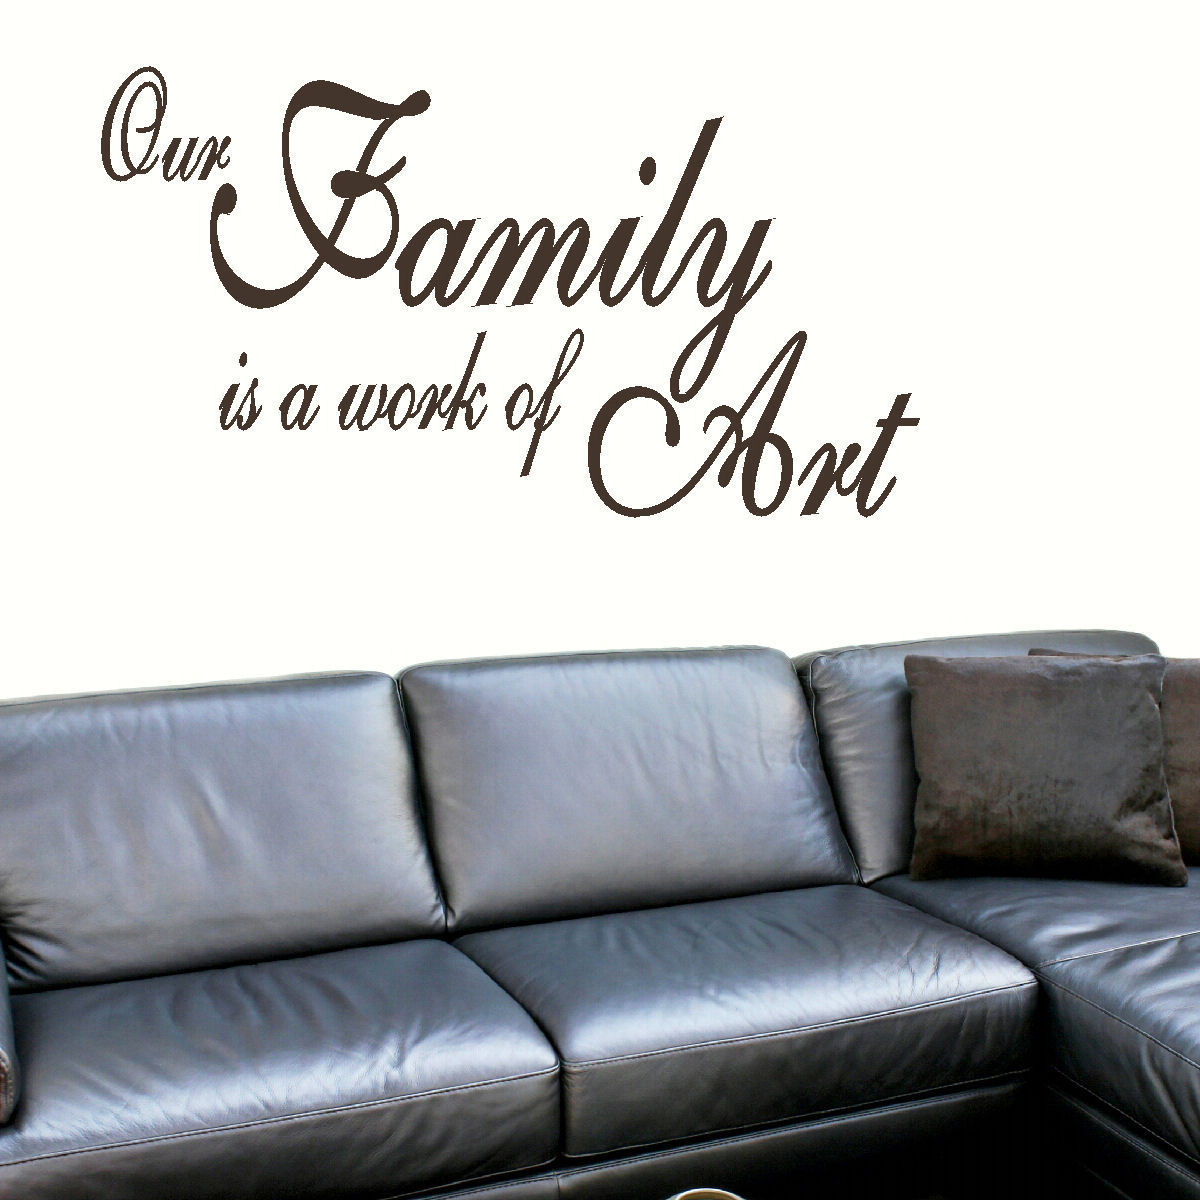 ... GIANT WALL MURAL STICKER ART TRANSFER VINYL DECAL. Quote ... Part 38